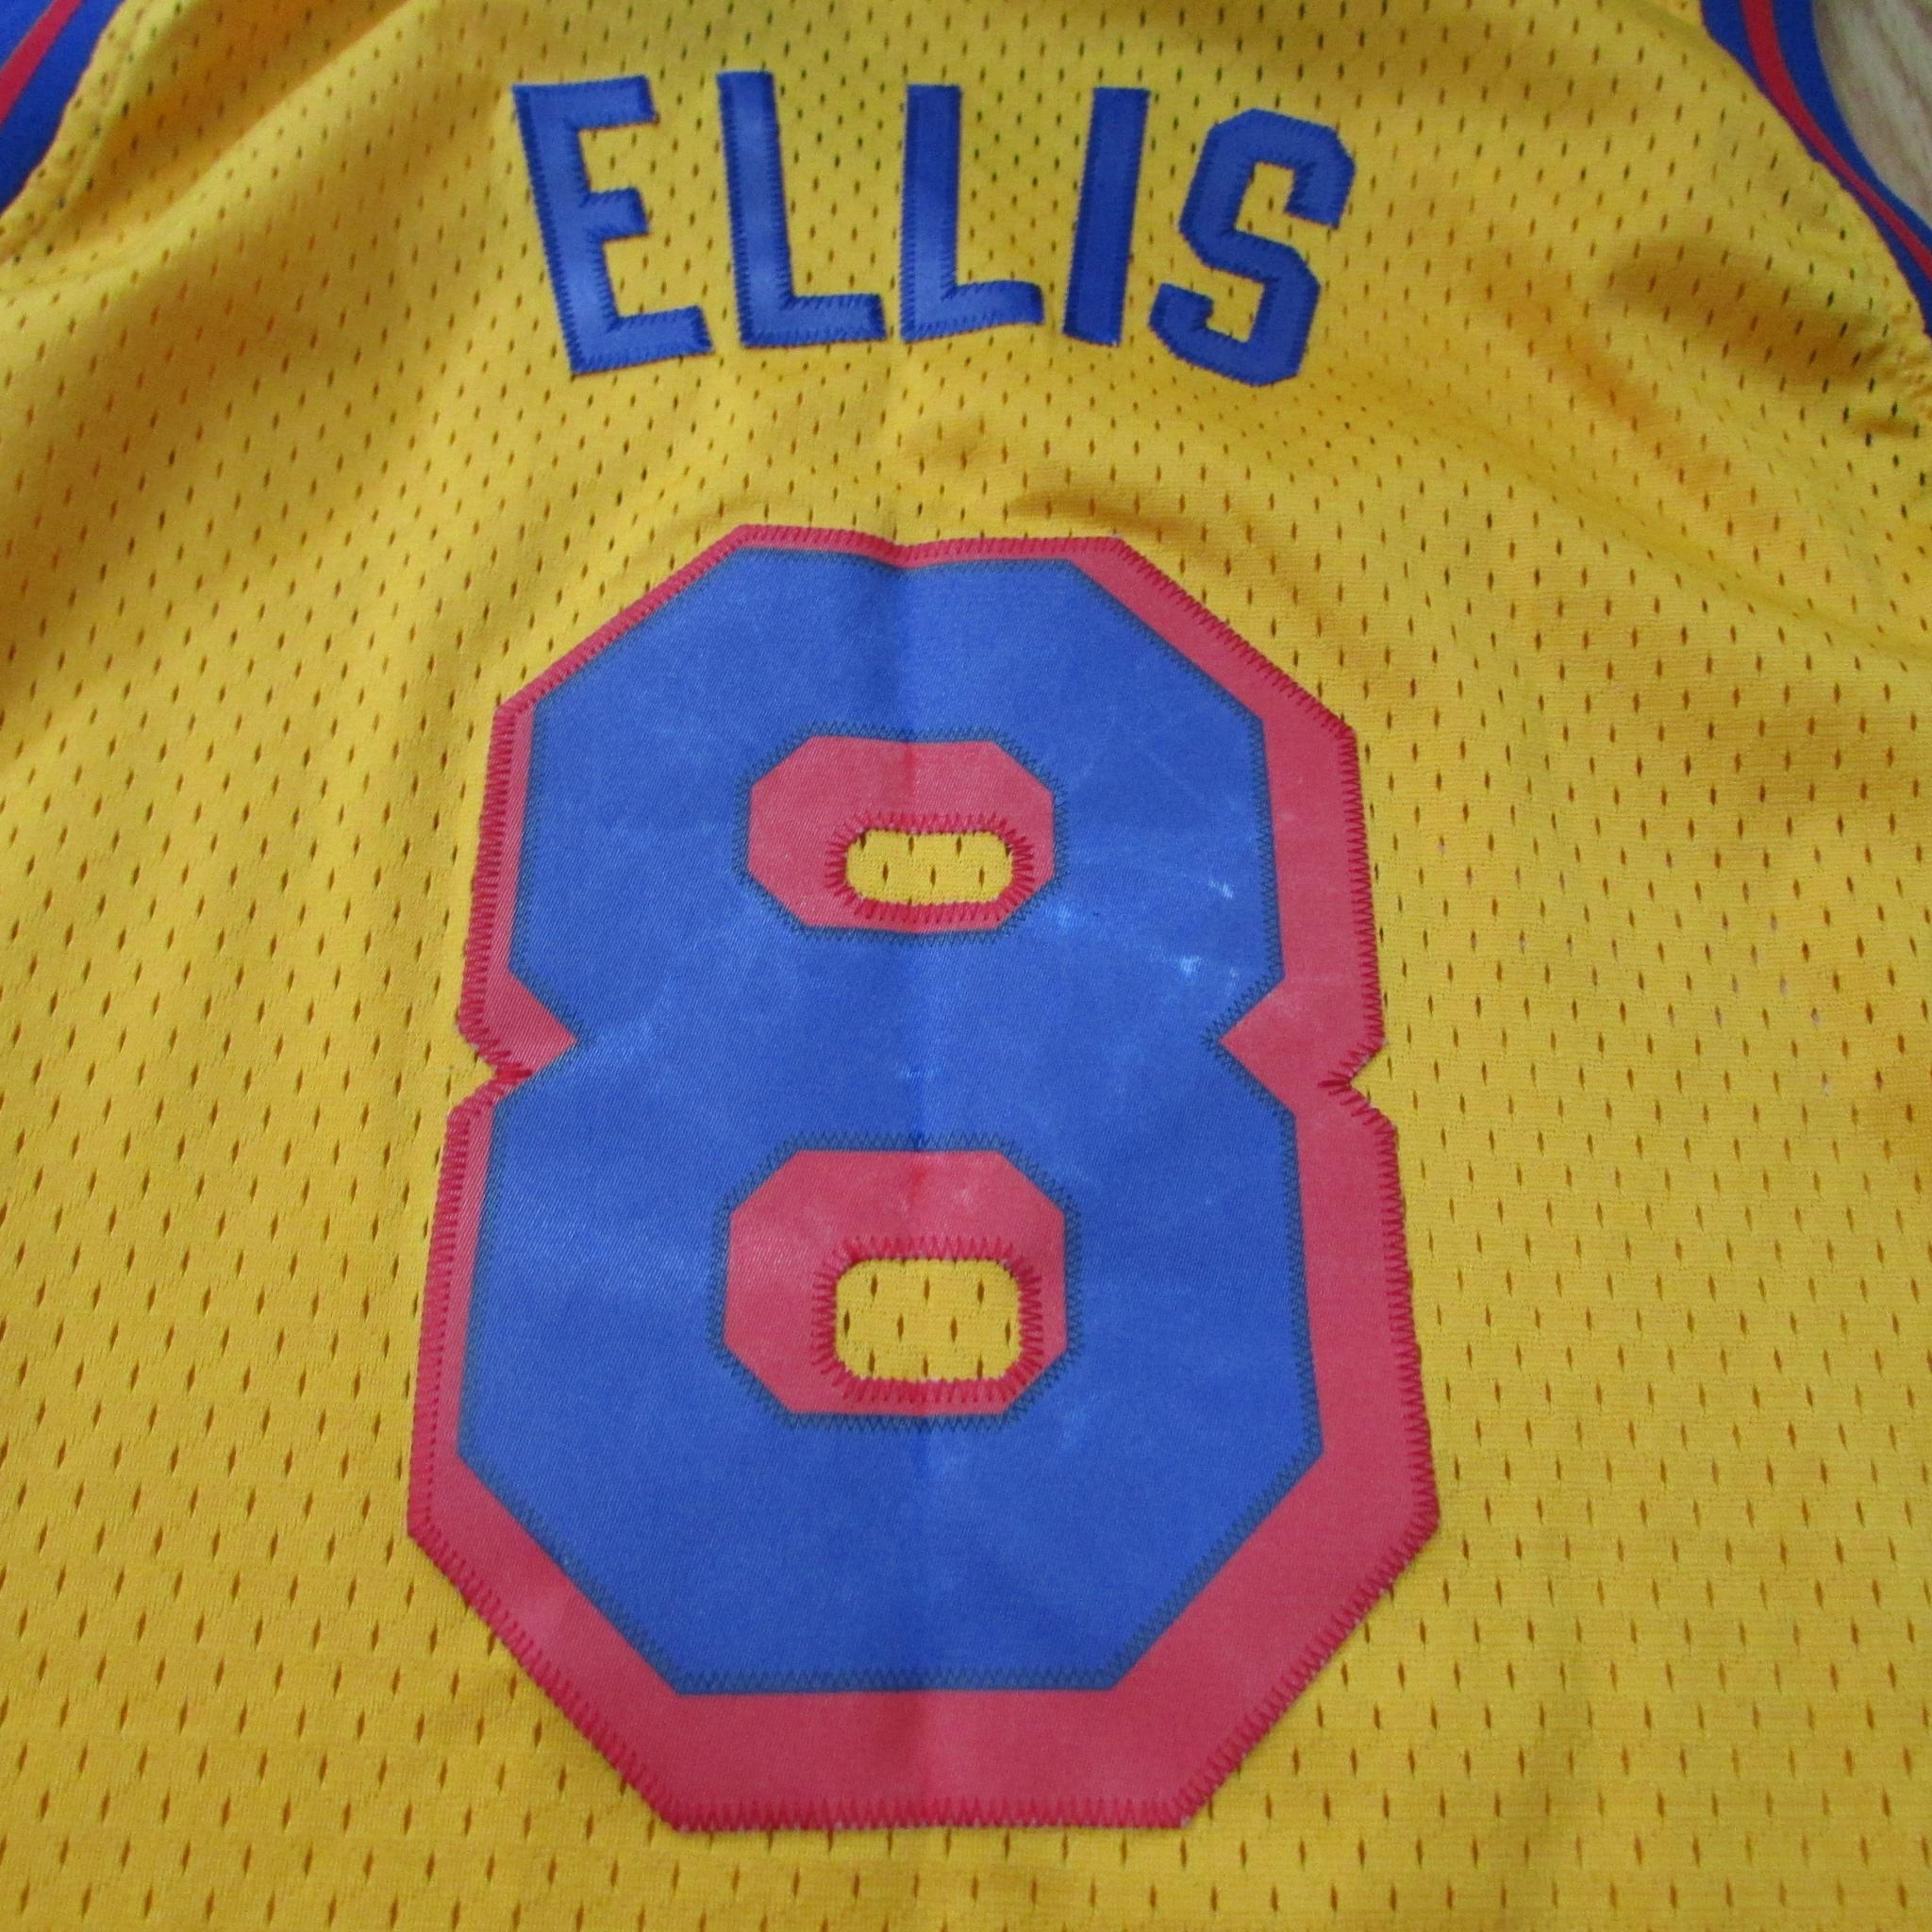 San Francisco Warriors Monta Ellis Basketball Jersey Hardwood Classics Sz XL